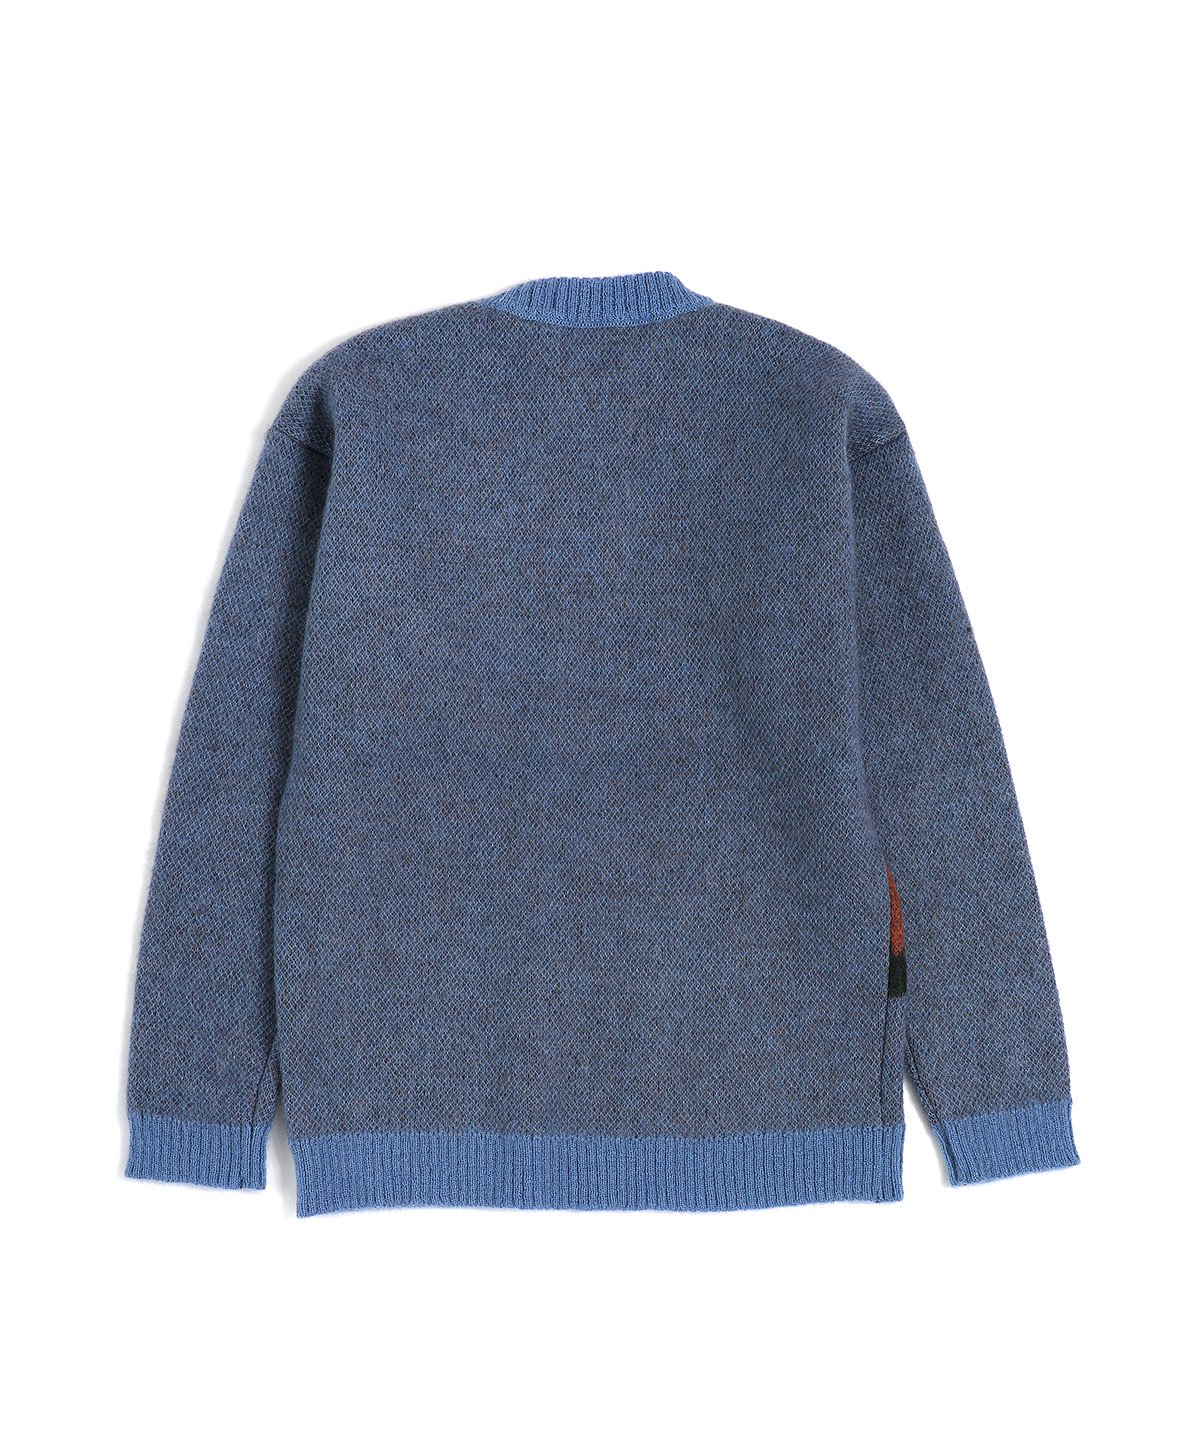 GHOST RANCH PULLOVER